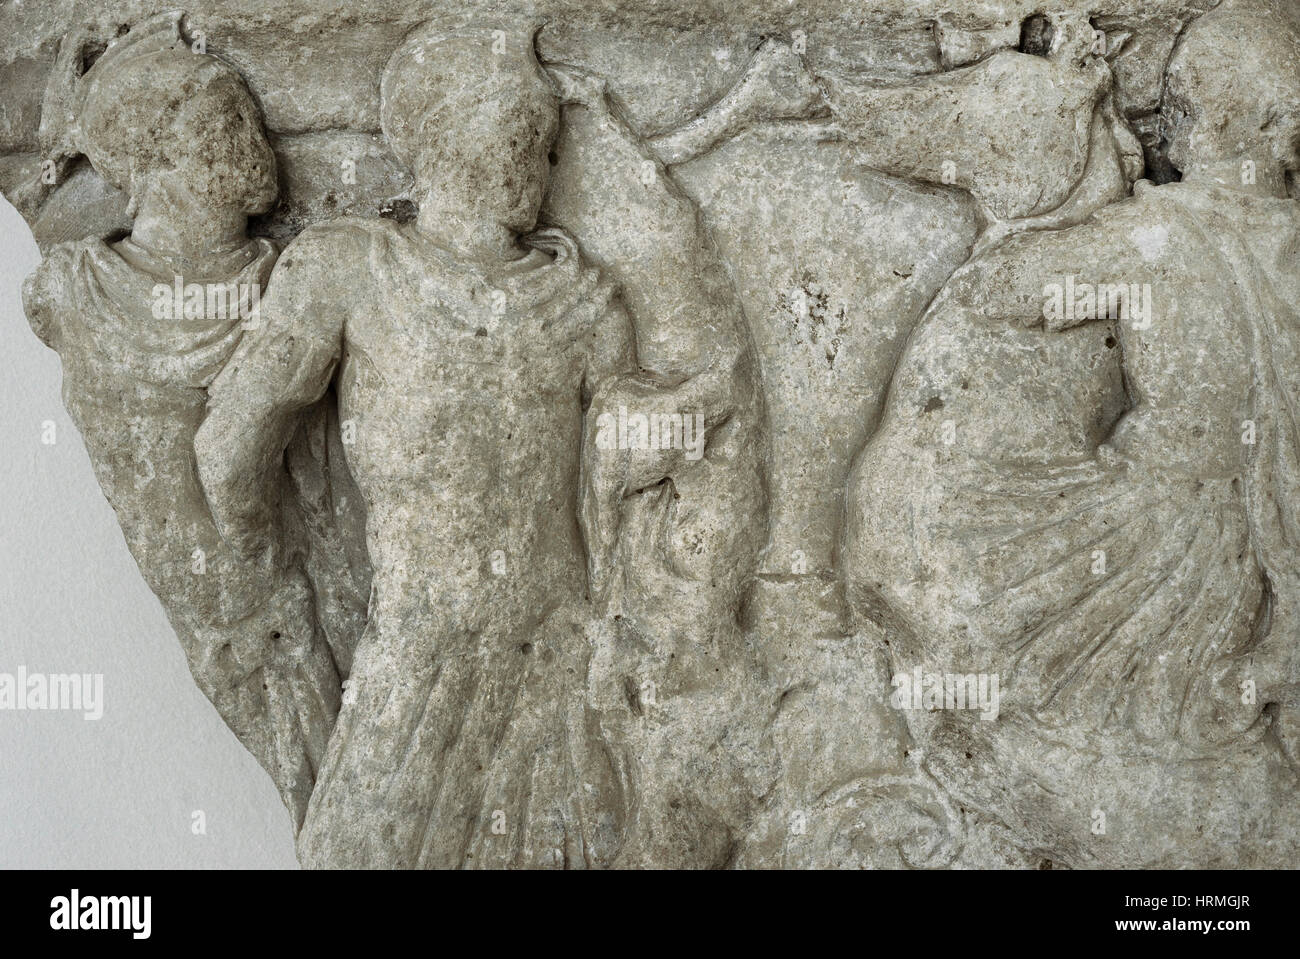 Fragment of sarcophagus with battle scene. National Archaeological Museum. Tarragona. Catalonia, Spain. - Stock Image